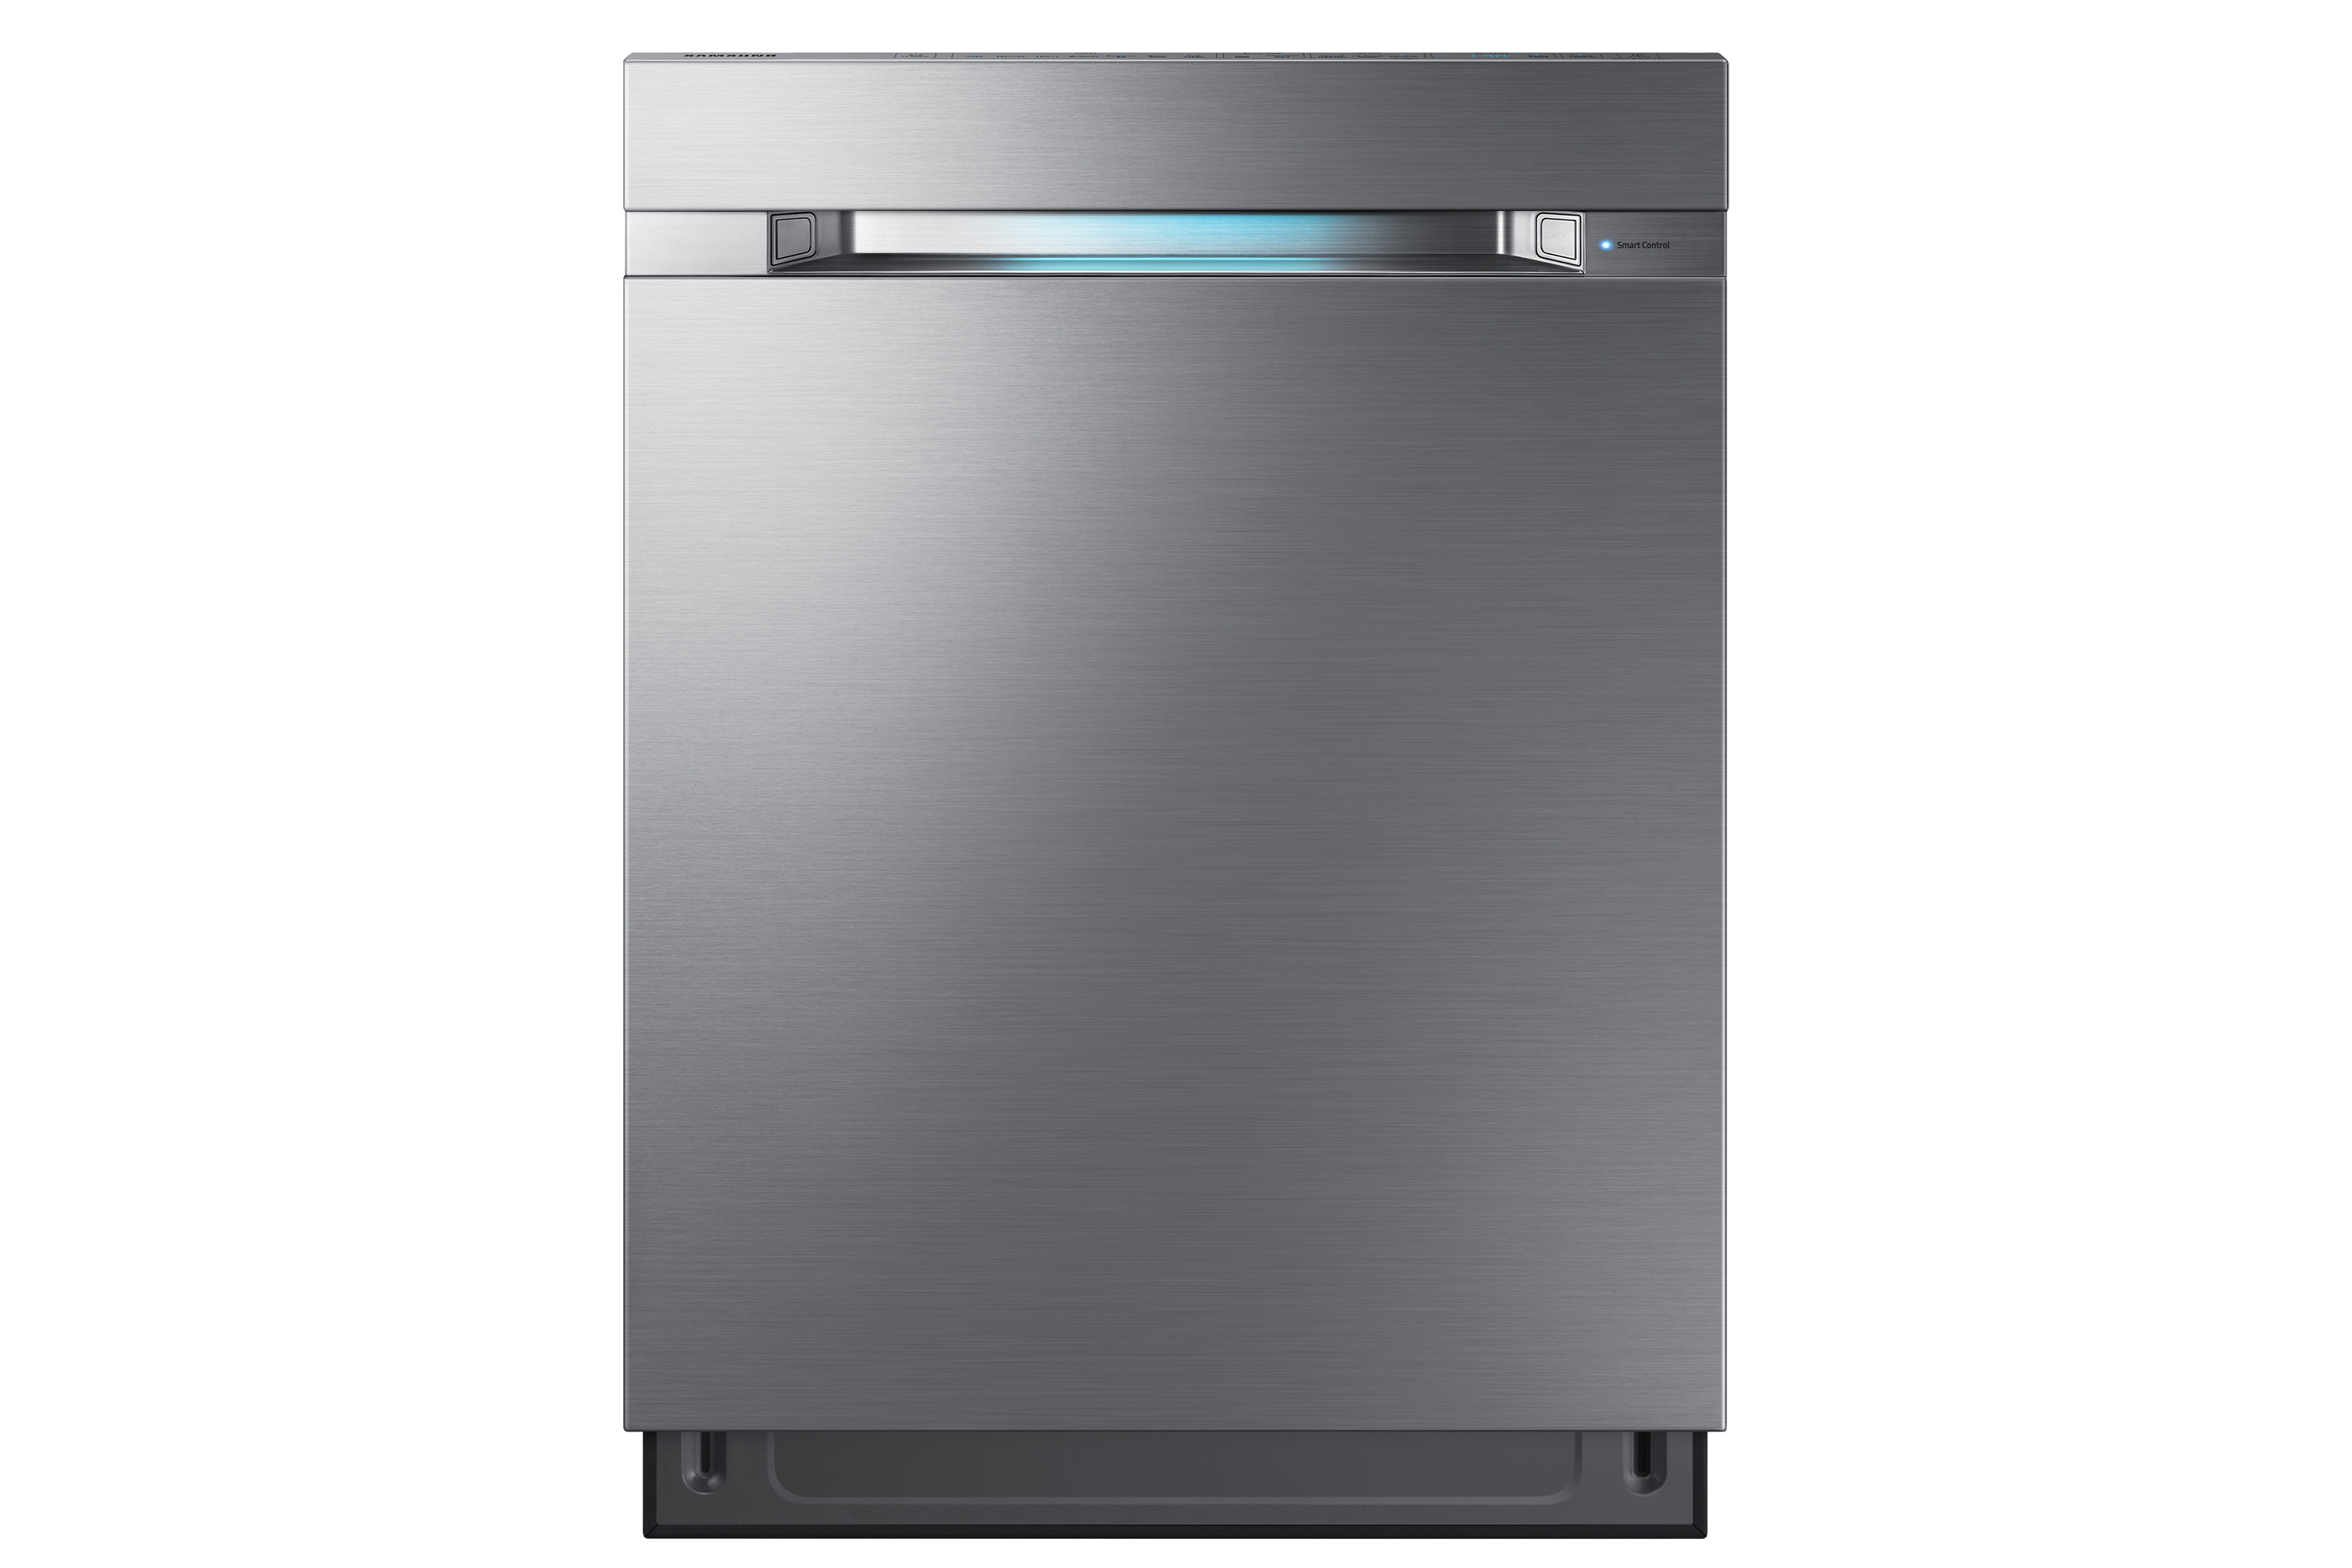 DW80M9960US Premium Plus Dishwasher with WaterWall™ Technology